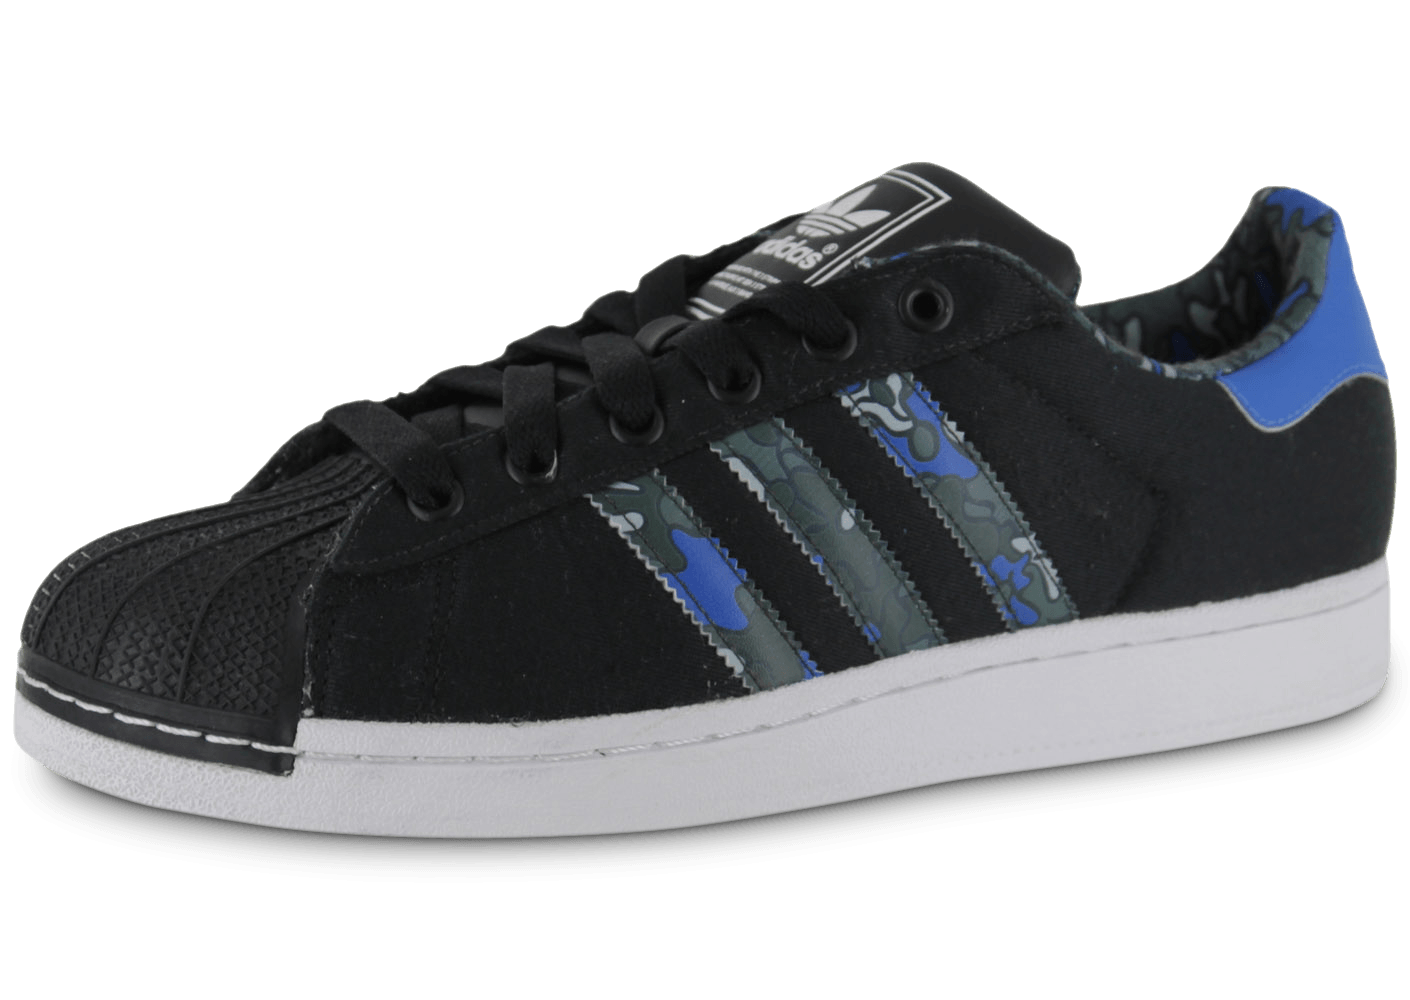 adidas superstar ii chaussures homme chausport. Black Bedroom Furniture Sets. Home Design Ideas